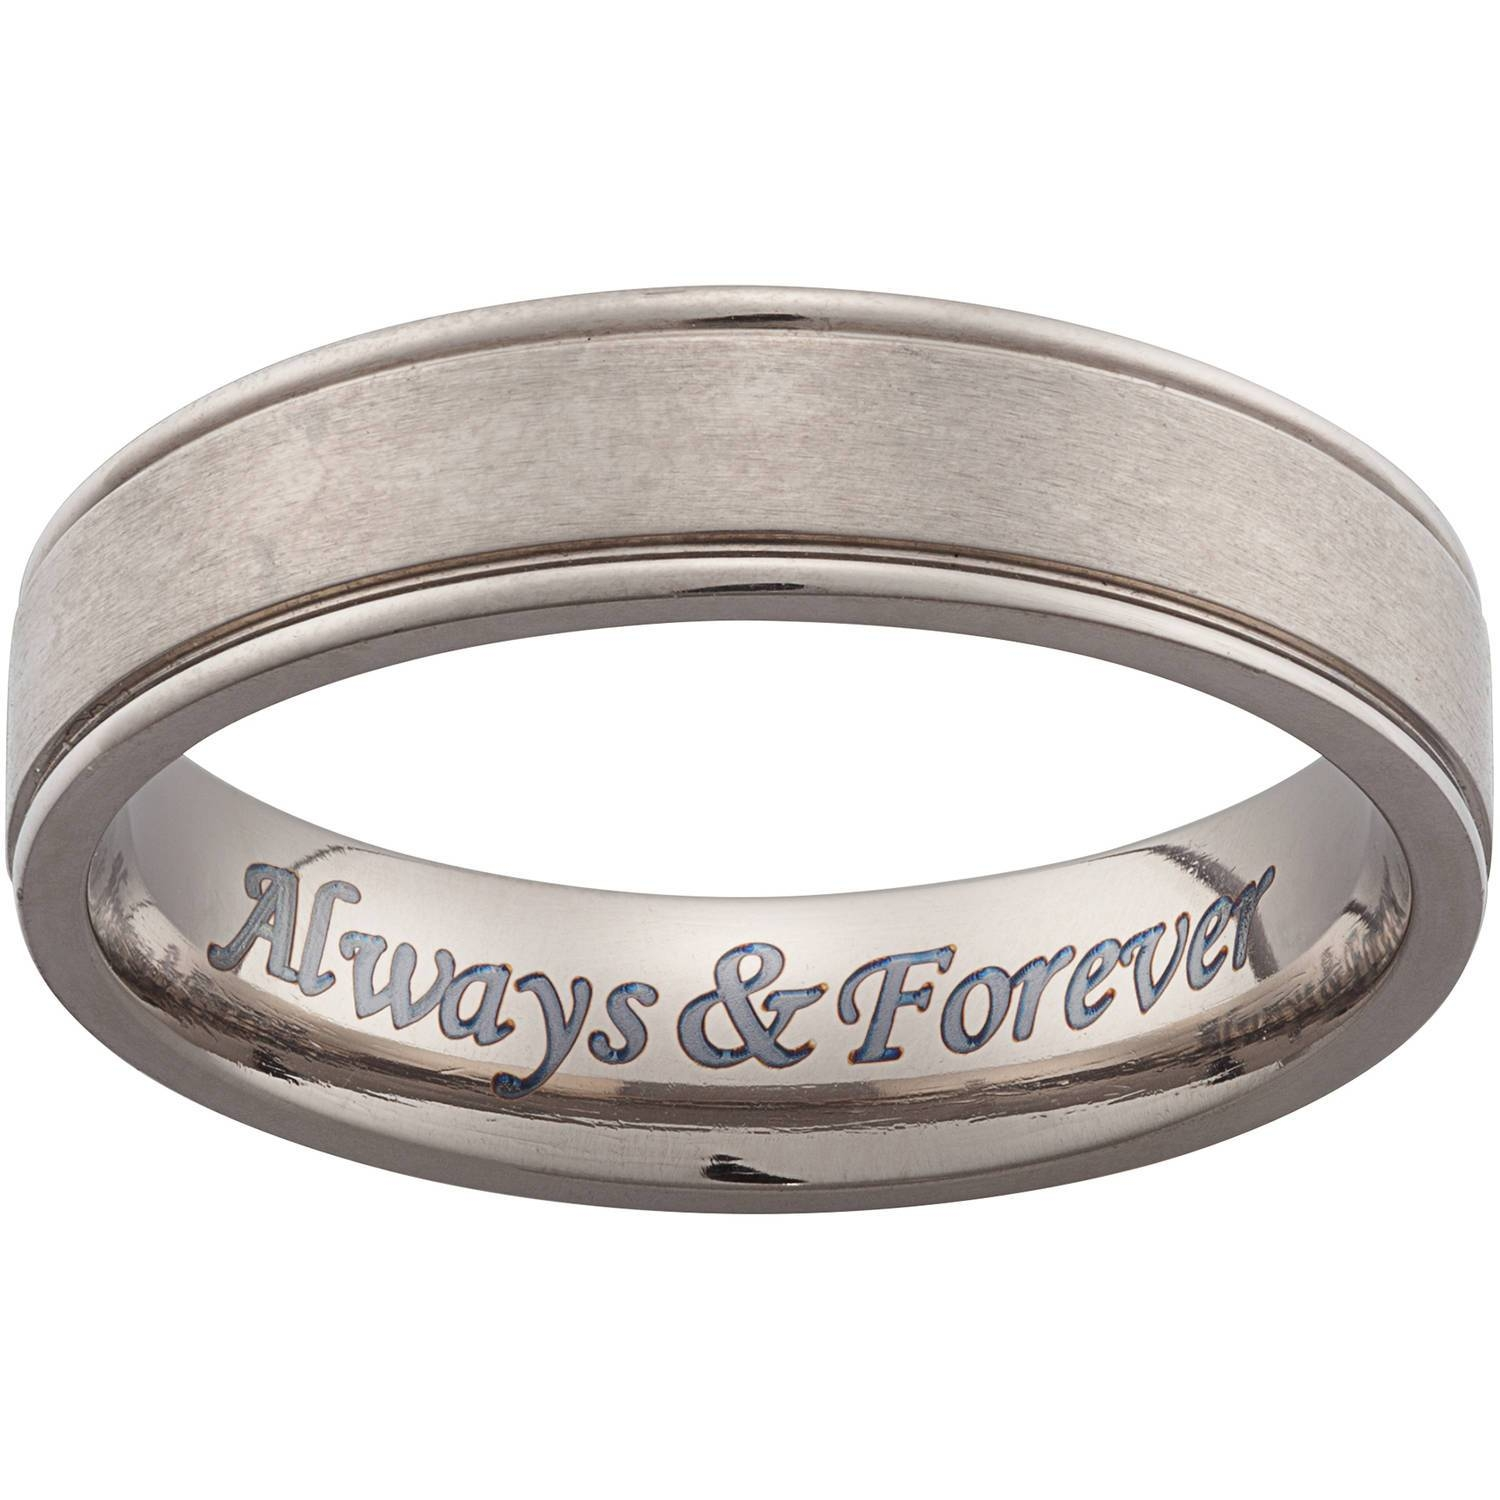 Personalized Stainless Steel Engraved Wedding Band – Walmart In Walmart Jewelry Men's Wedding Bands (View 10 of 15)